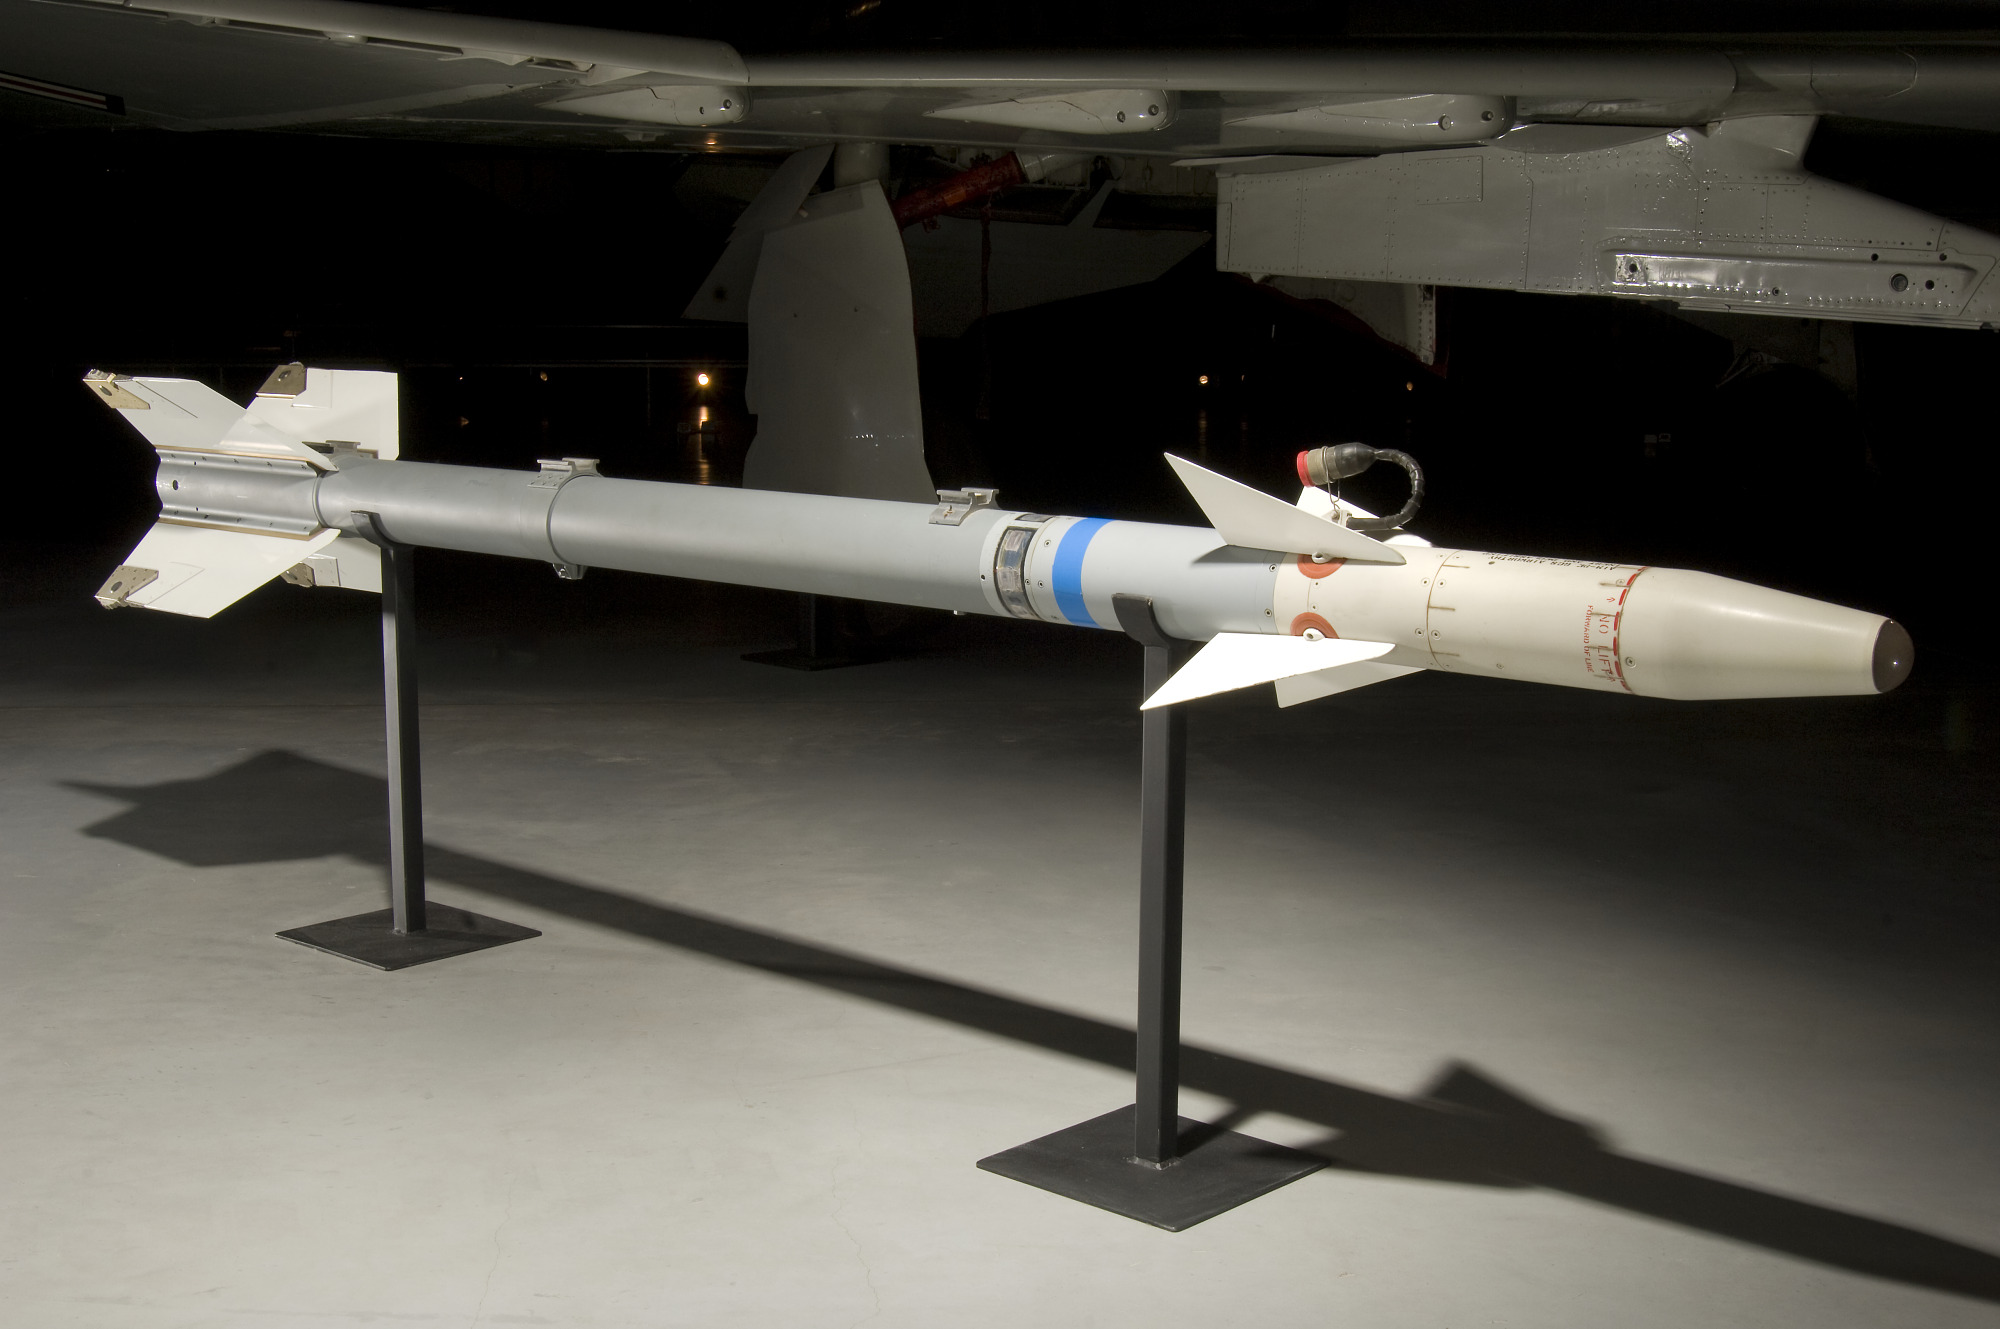 Image of : Missile, Air-to-Air, Sidewinder, AIM 9E